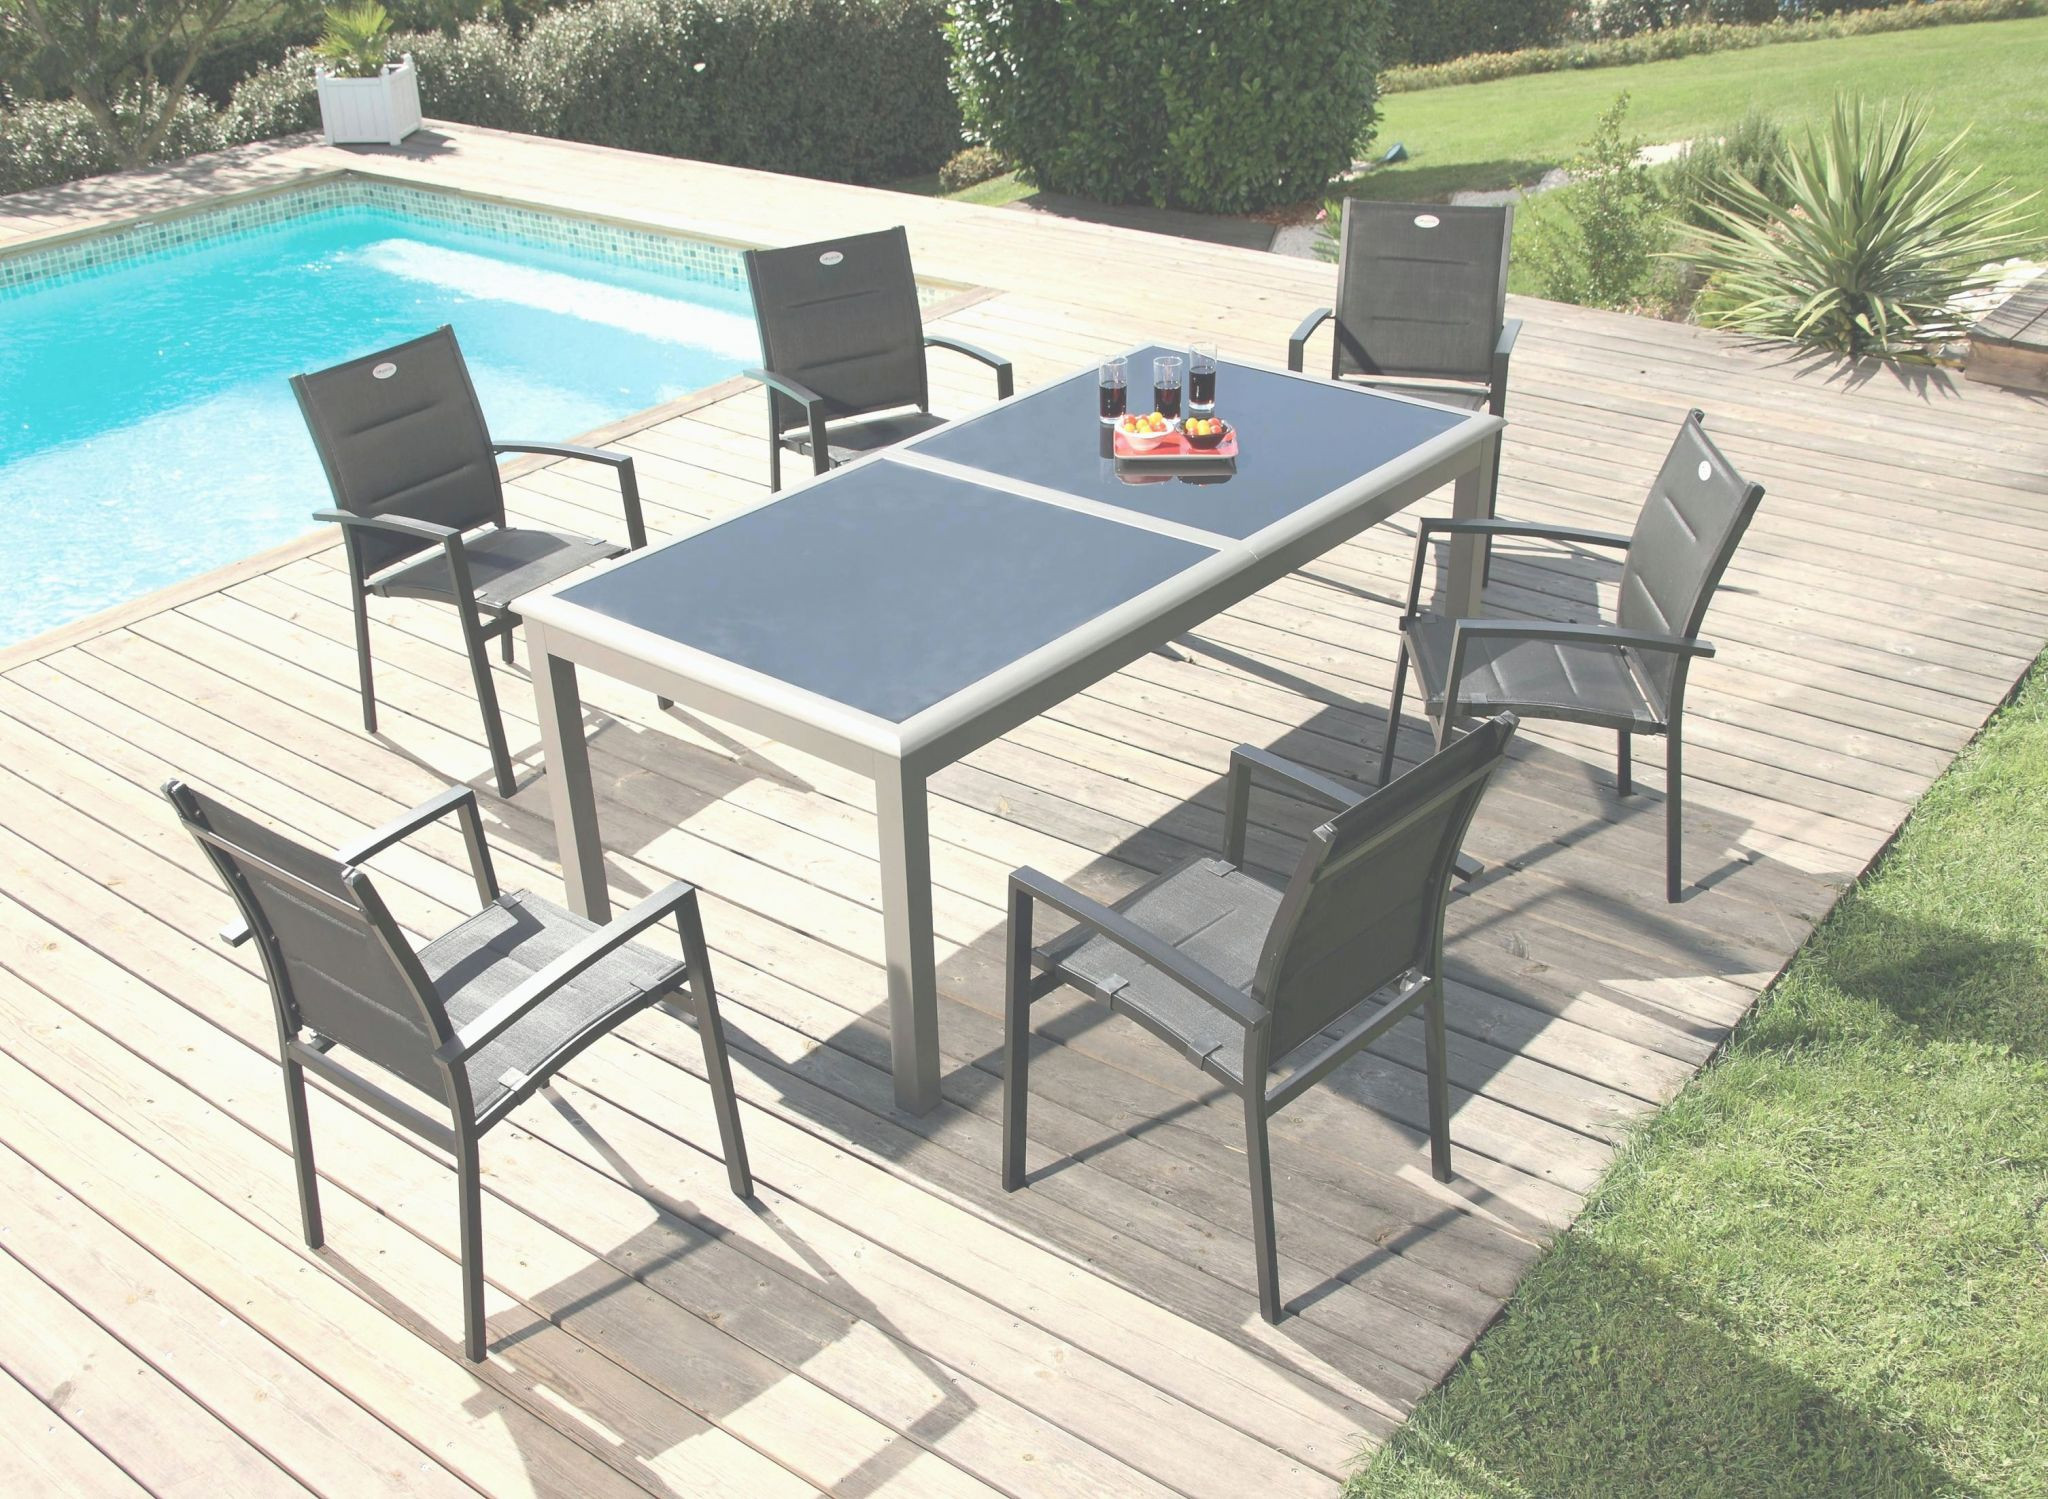 table de jardin bri arche bri arche mobilier de jardin of table de jardin bri arche